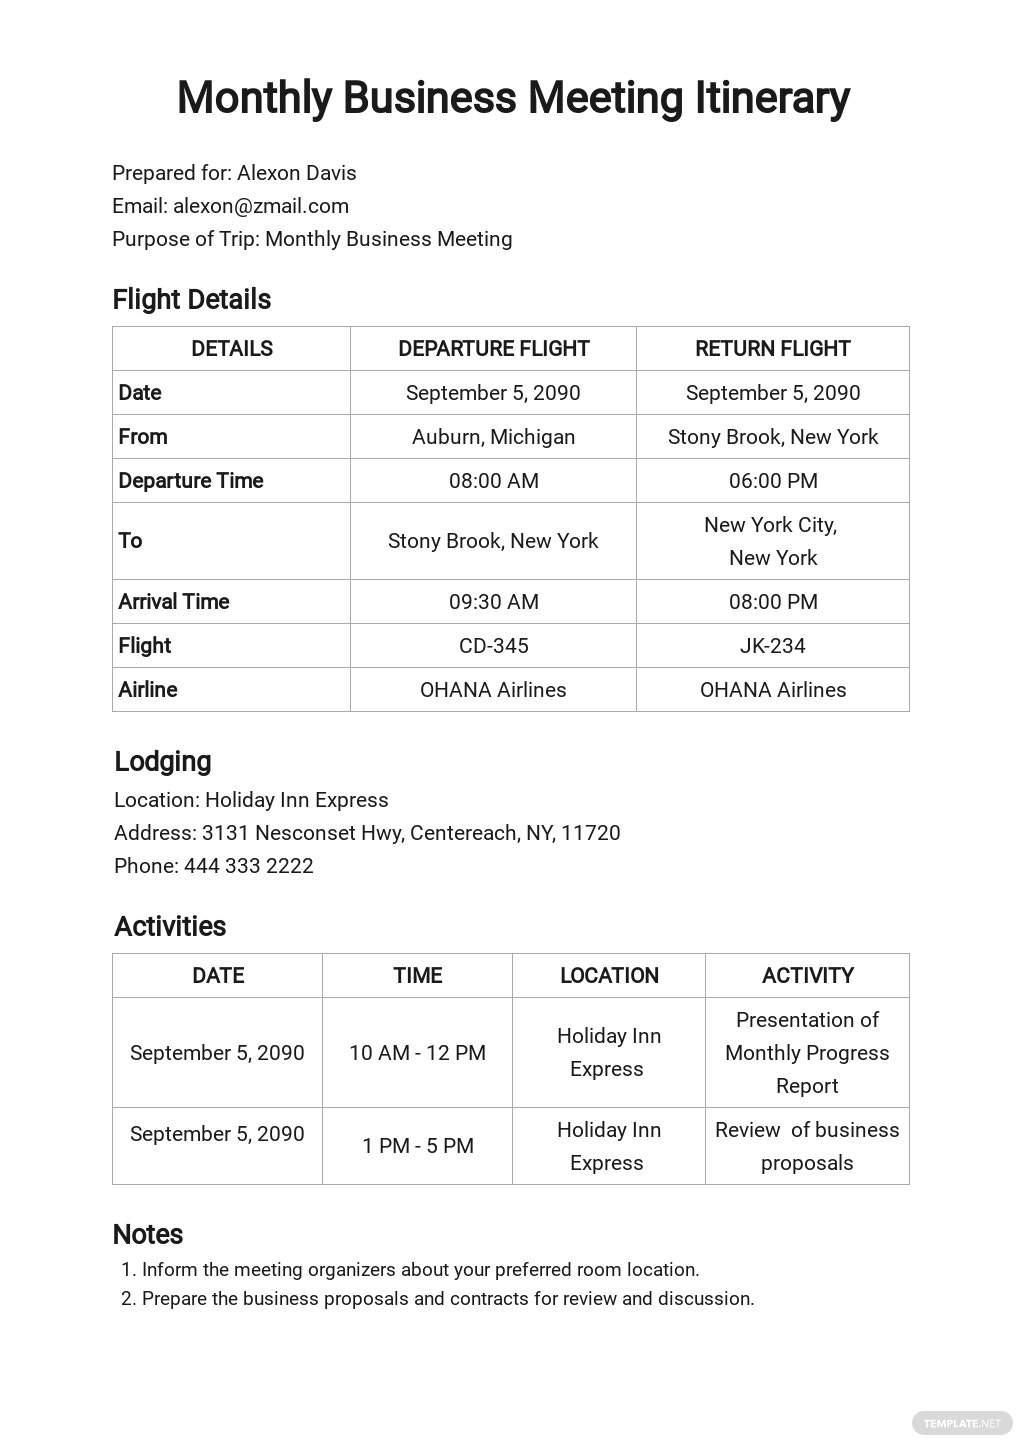 Business Itinerary Template [Free PDF] - Google Docs, Word